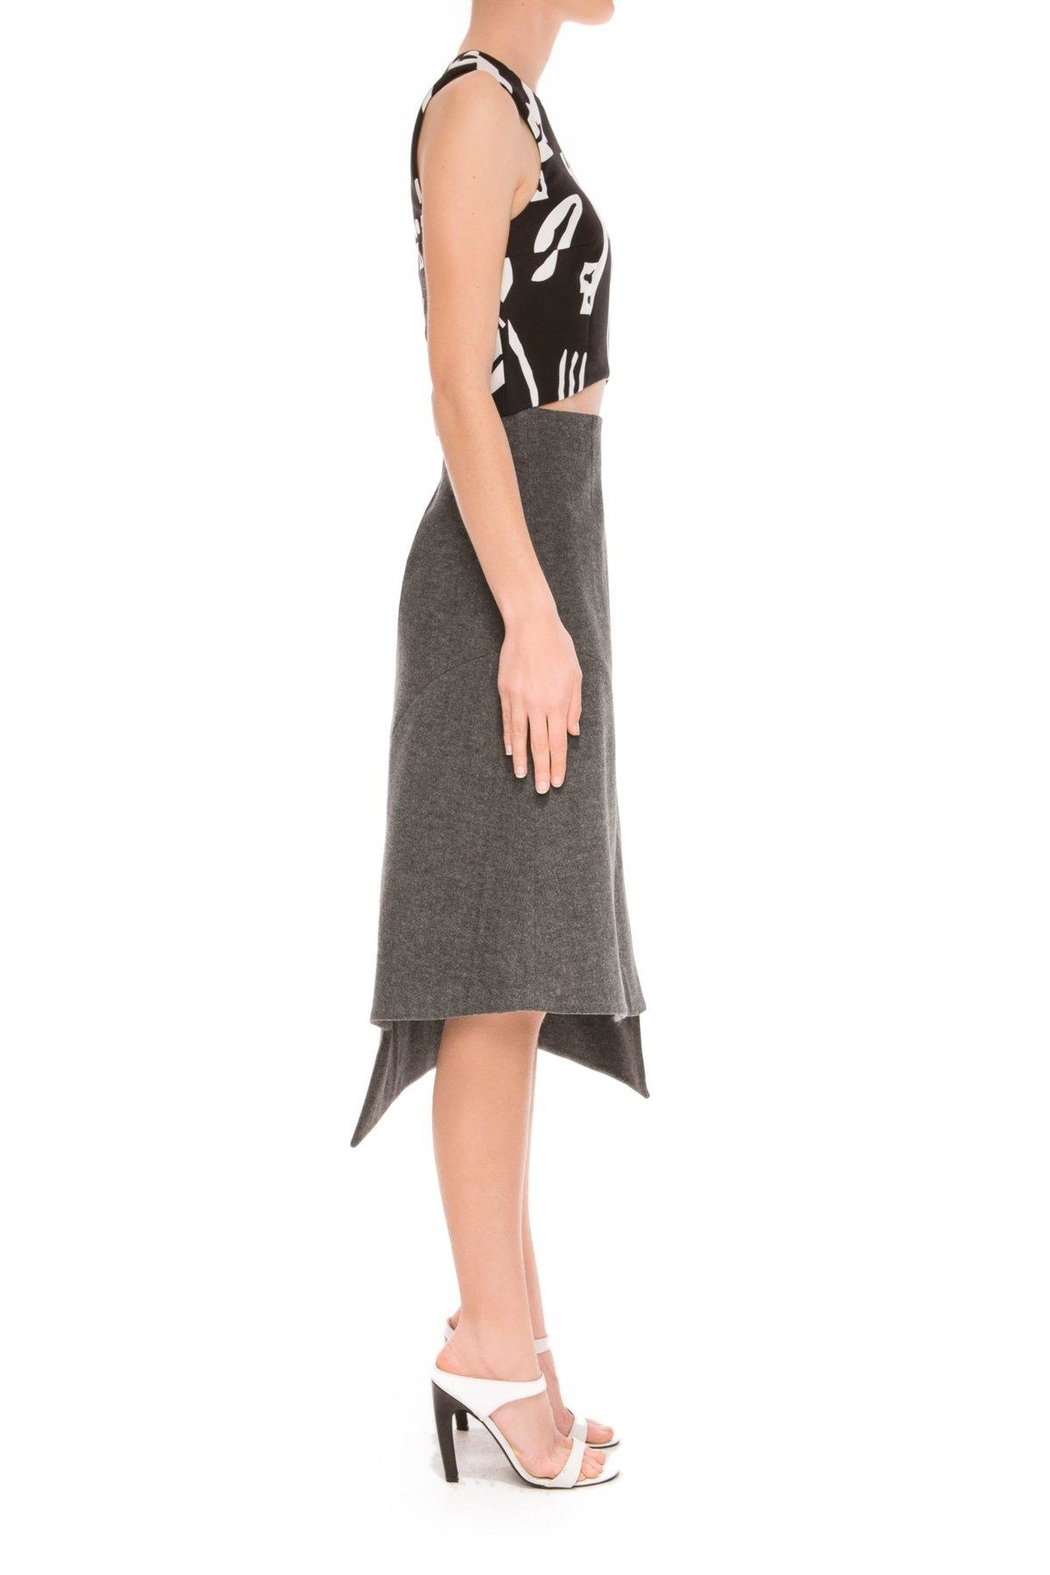 C/MEO COLLECTIVE Wrapped Up Skirt - Front Full Image